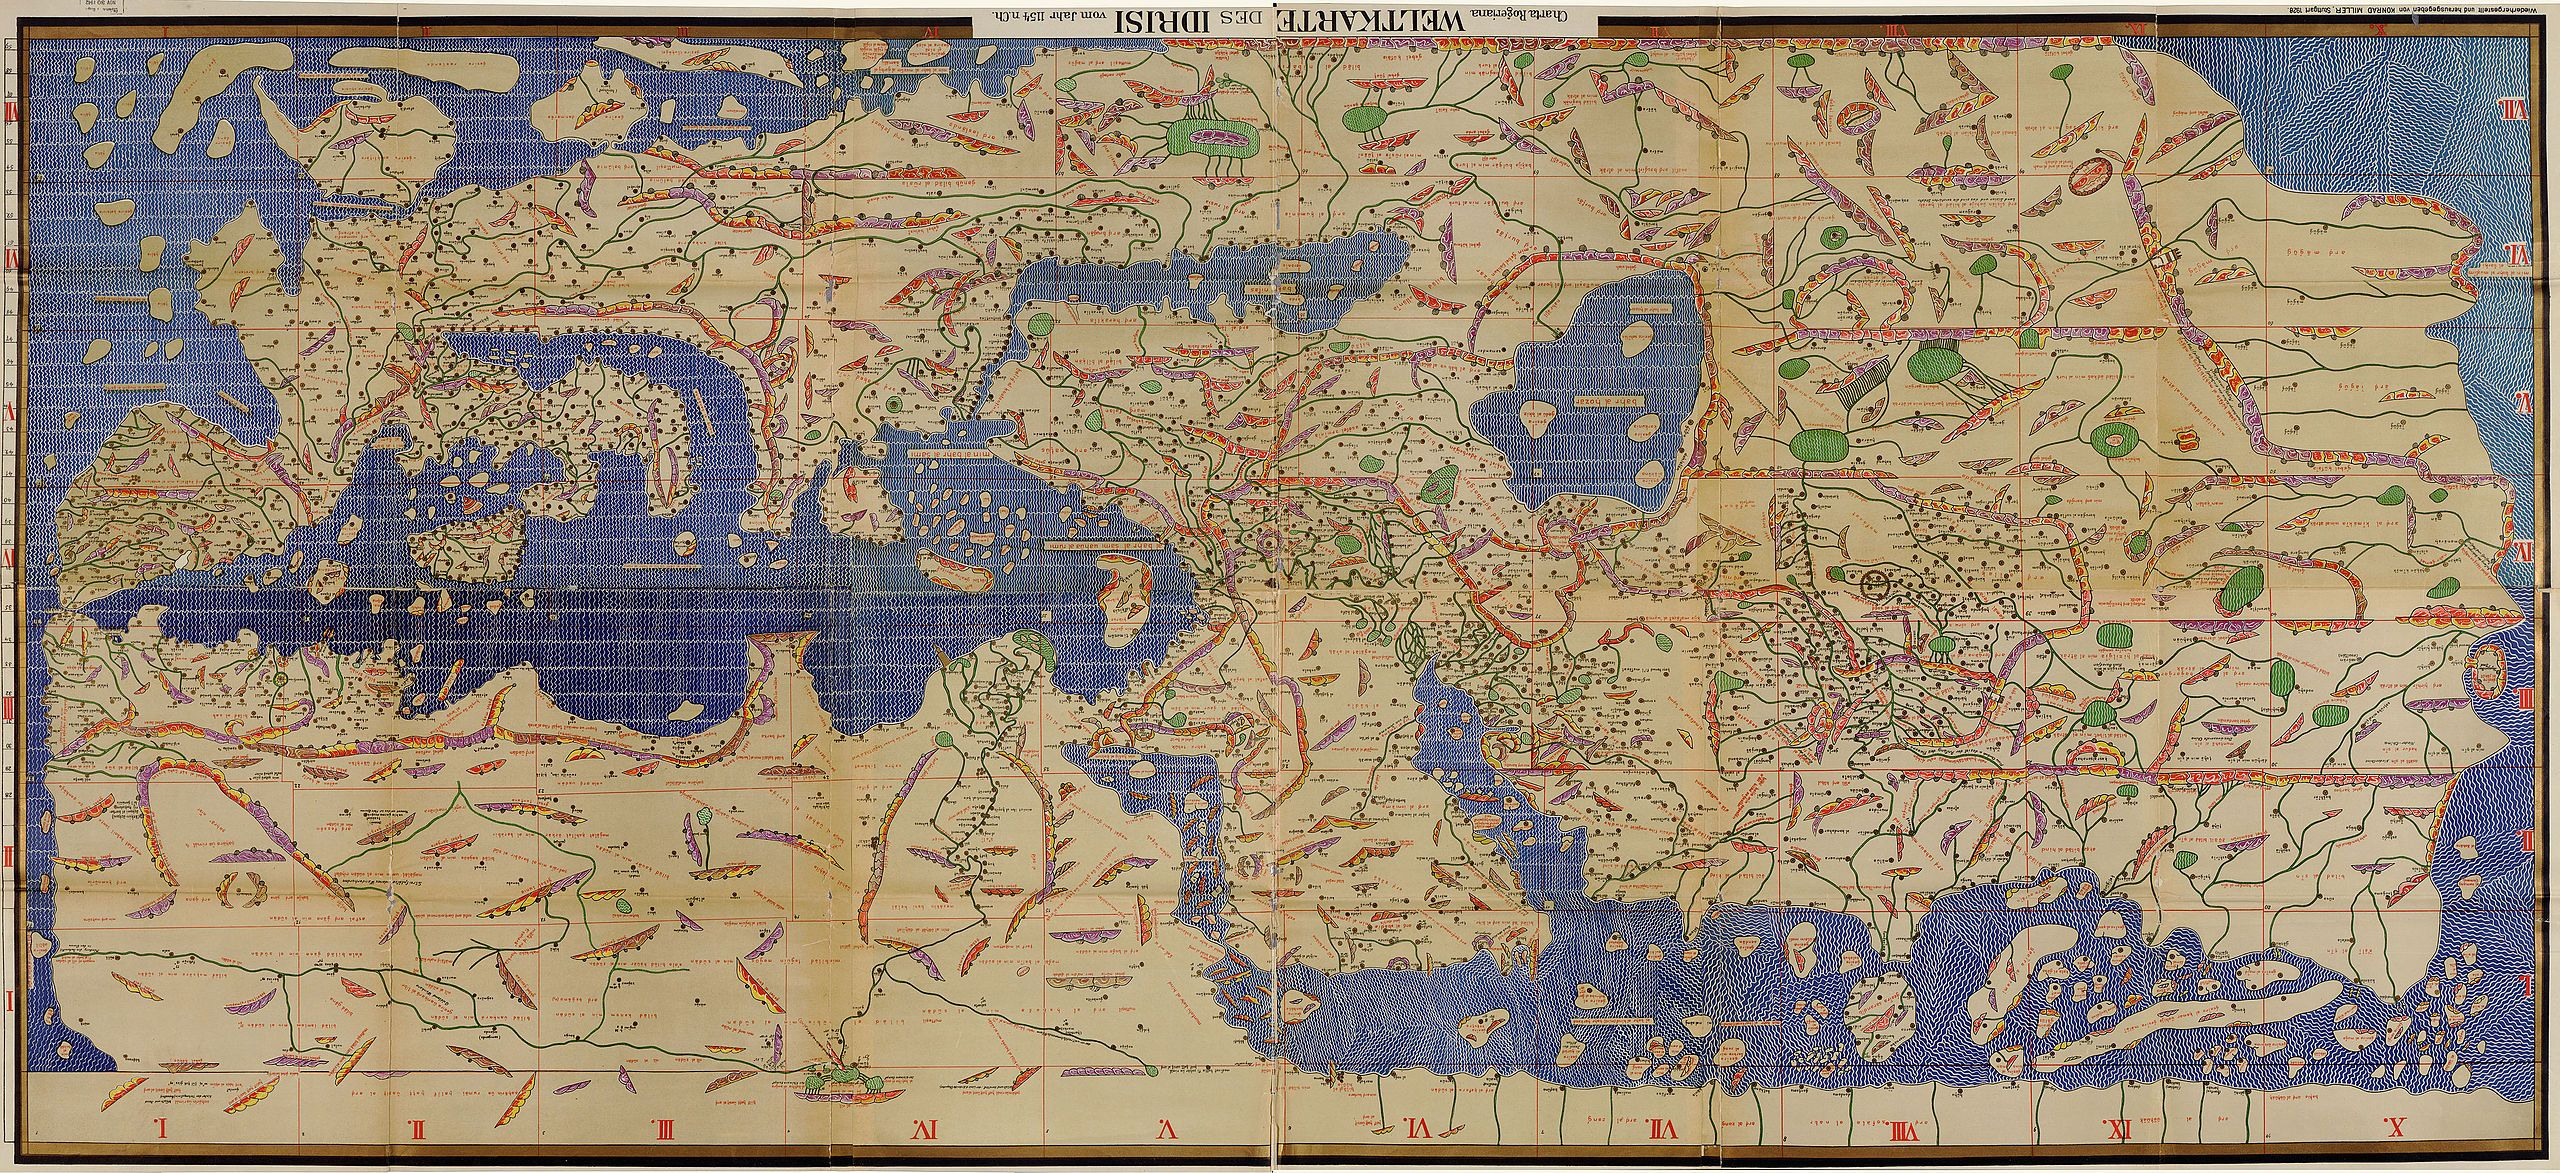 Tabularogeriana upside down tabula rogeriana wikipdia world the tabula rogeriana drawn by al idrisi for roger ii of sicily in one of the most advanced ancient world maps modern consolidation created from the 70 gumiabroncs Images